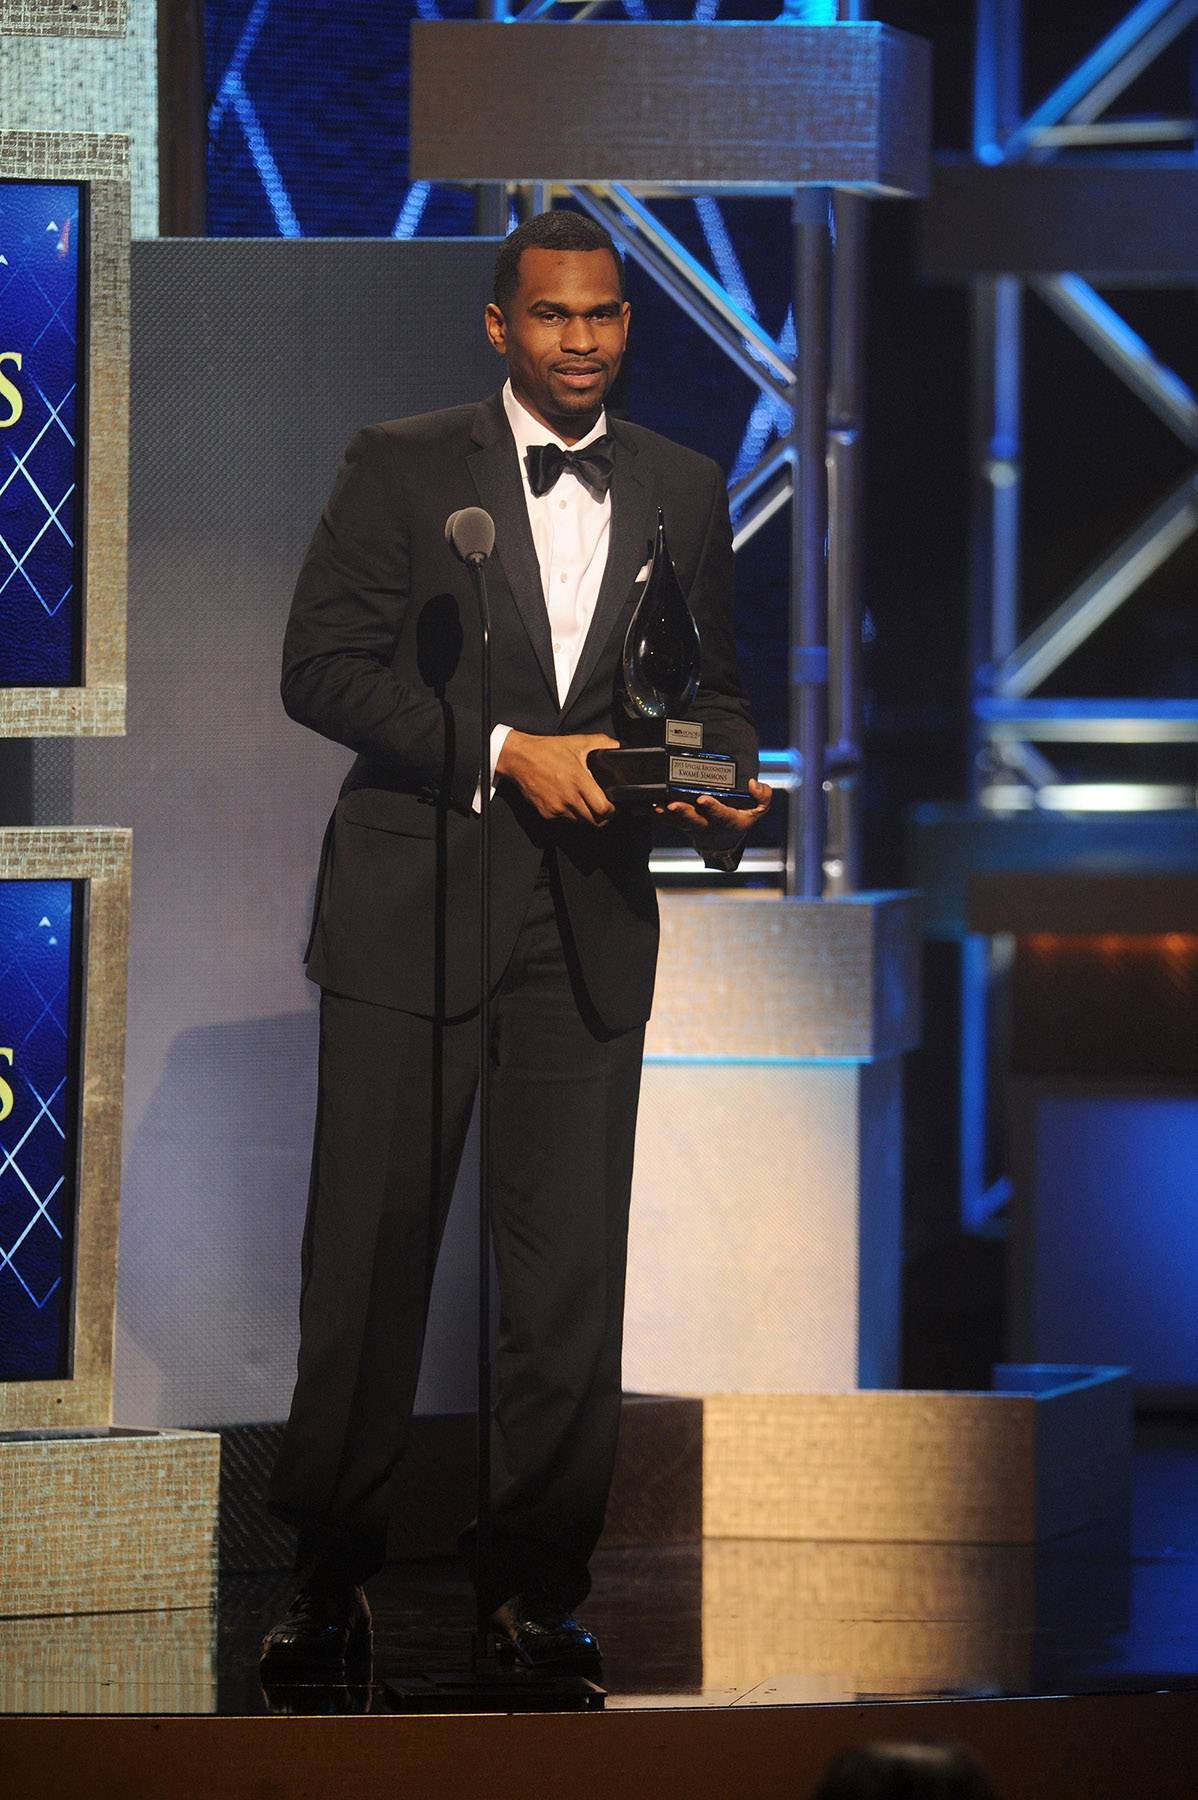 Digital Connection  - The BET Honors Digital Special Recognition recipientKwame Simmons dedicates his acceptance speech to the communities that he works hard to influence and educate. (Photo: Brad Barket/BET/Getty Images for BET)